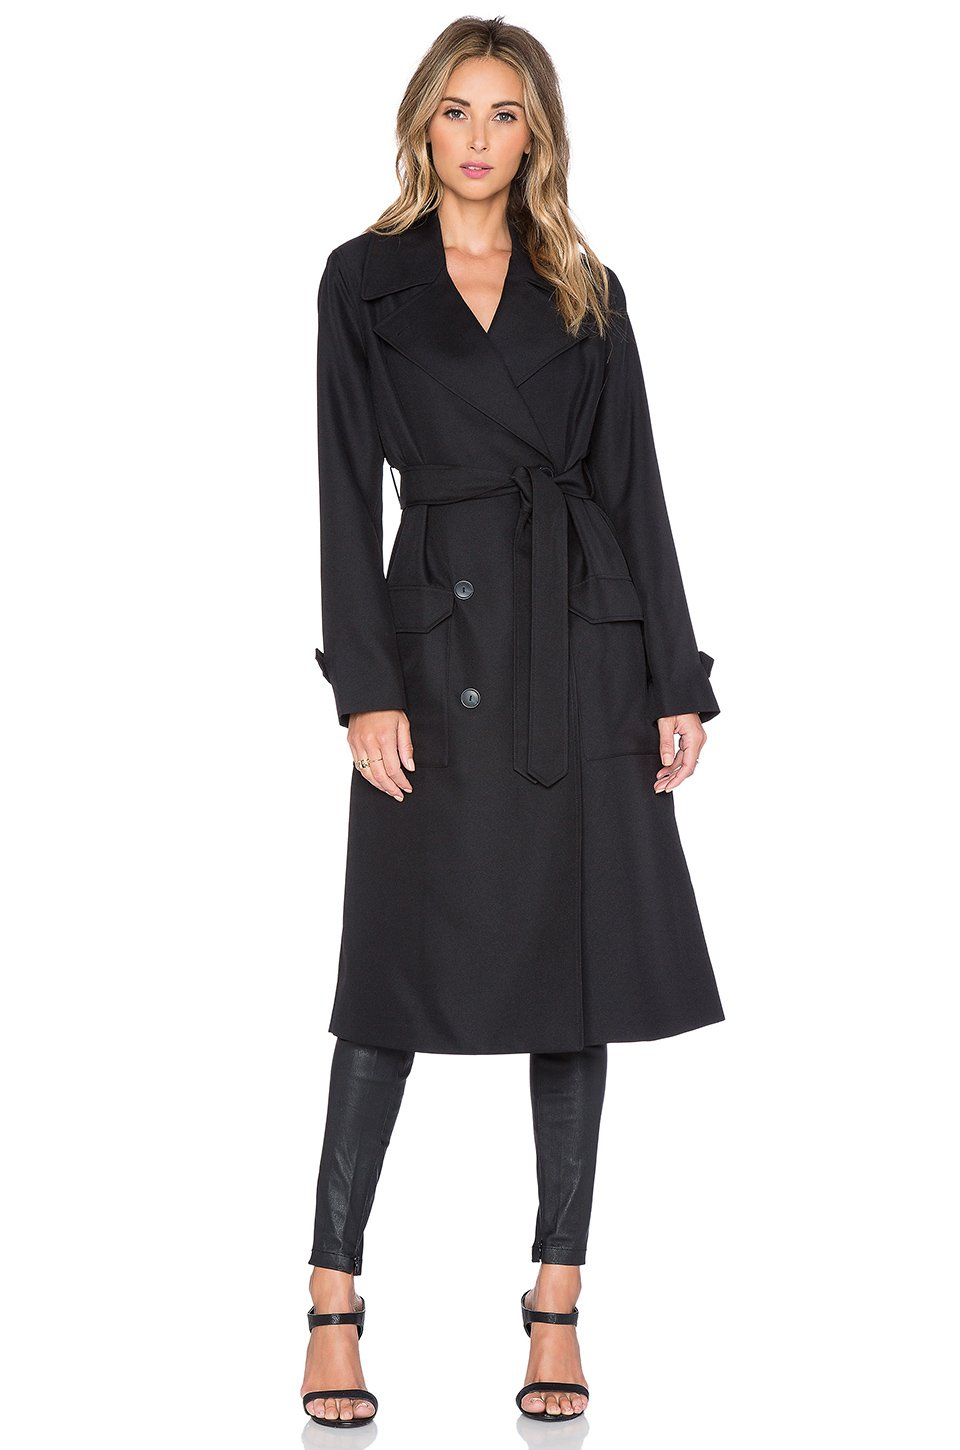 lyst t by alexander wang sleek trench coat in black. Black Bedroom Furniture Sets. Home Design Ideas